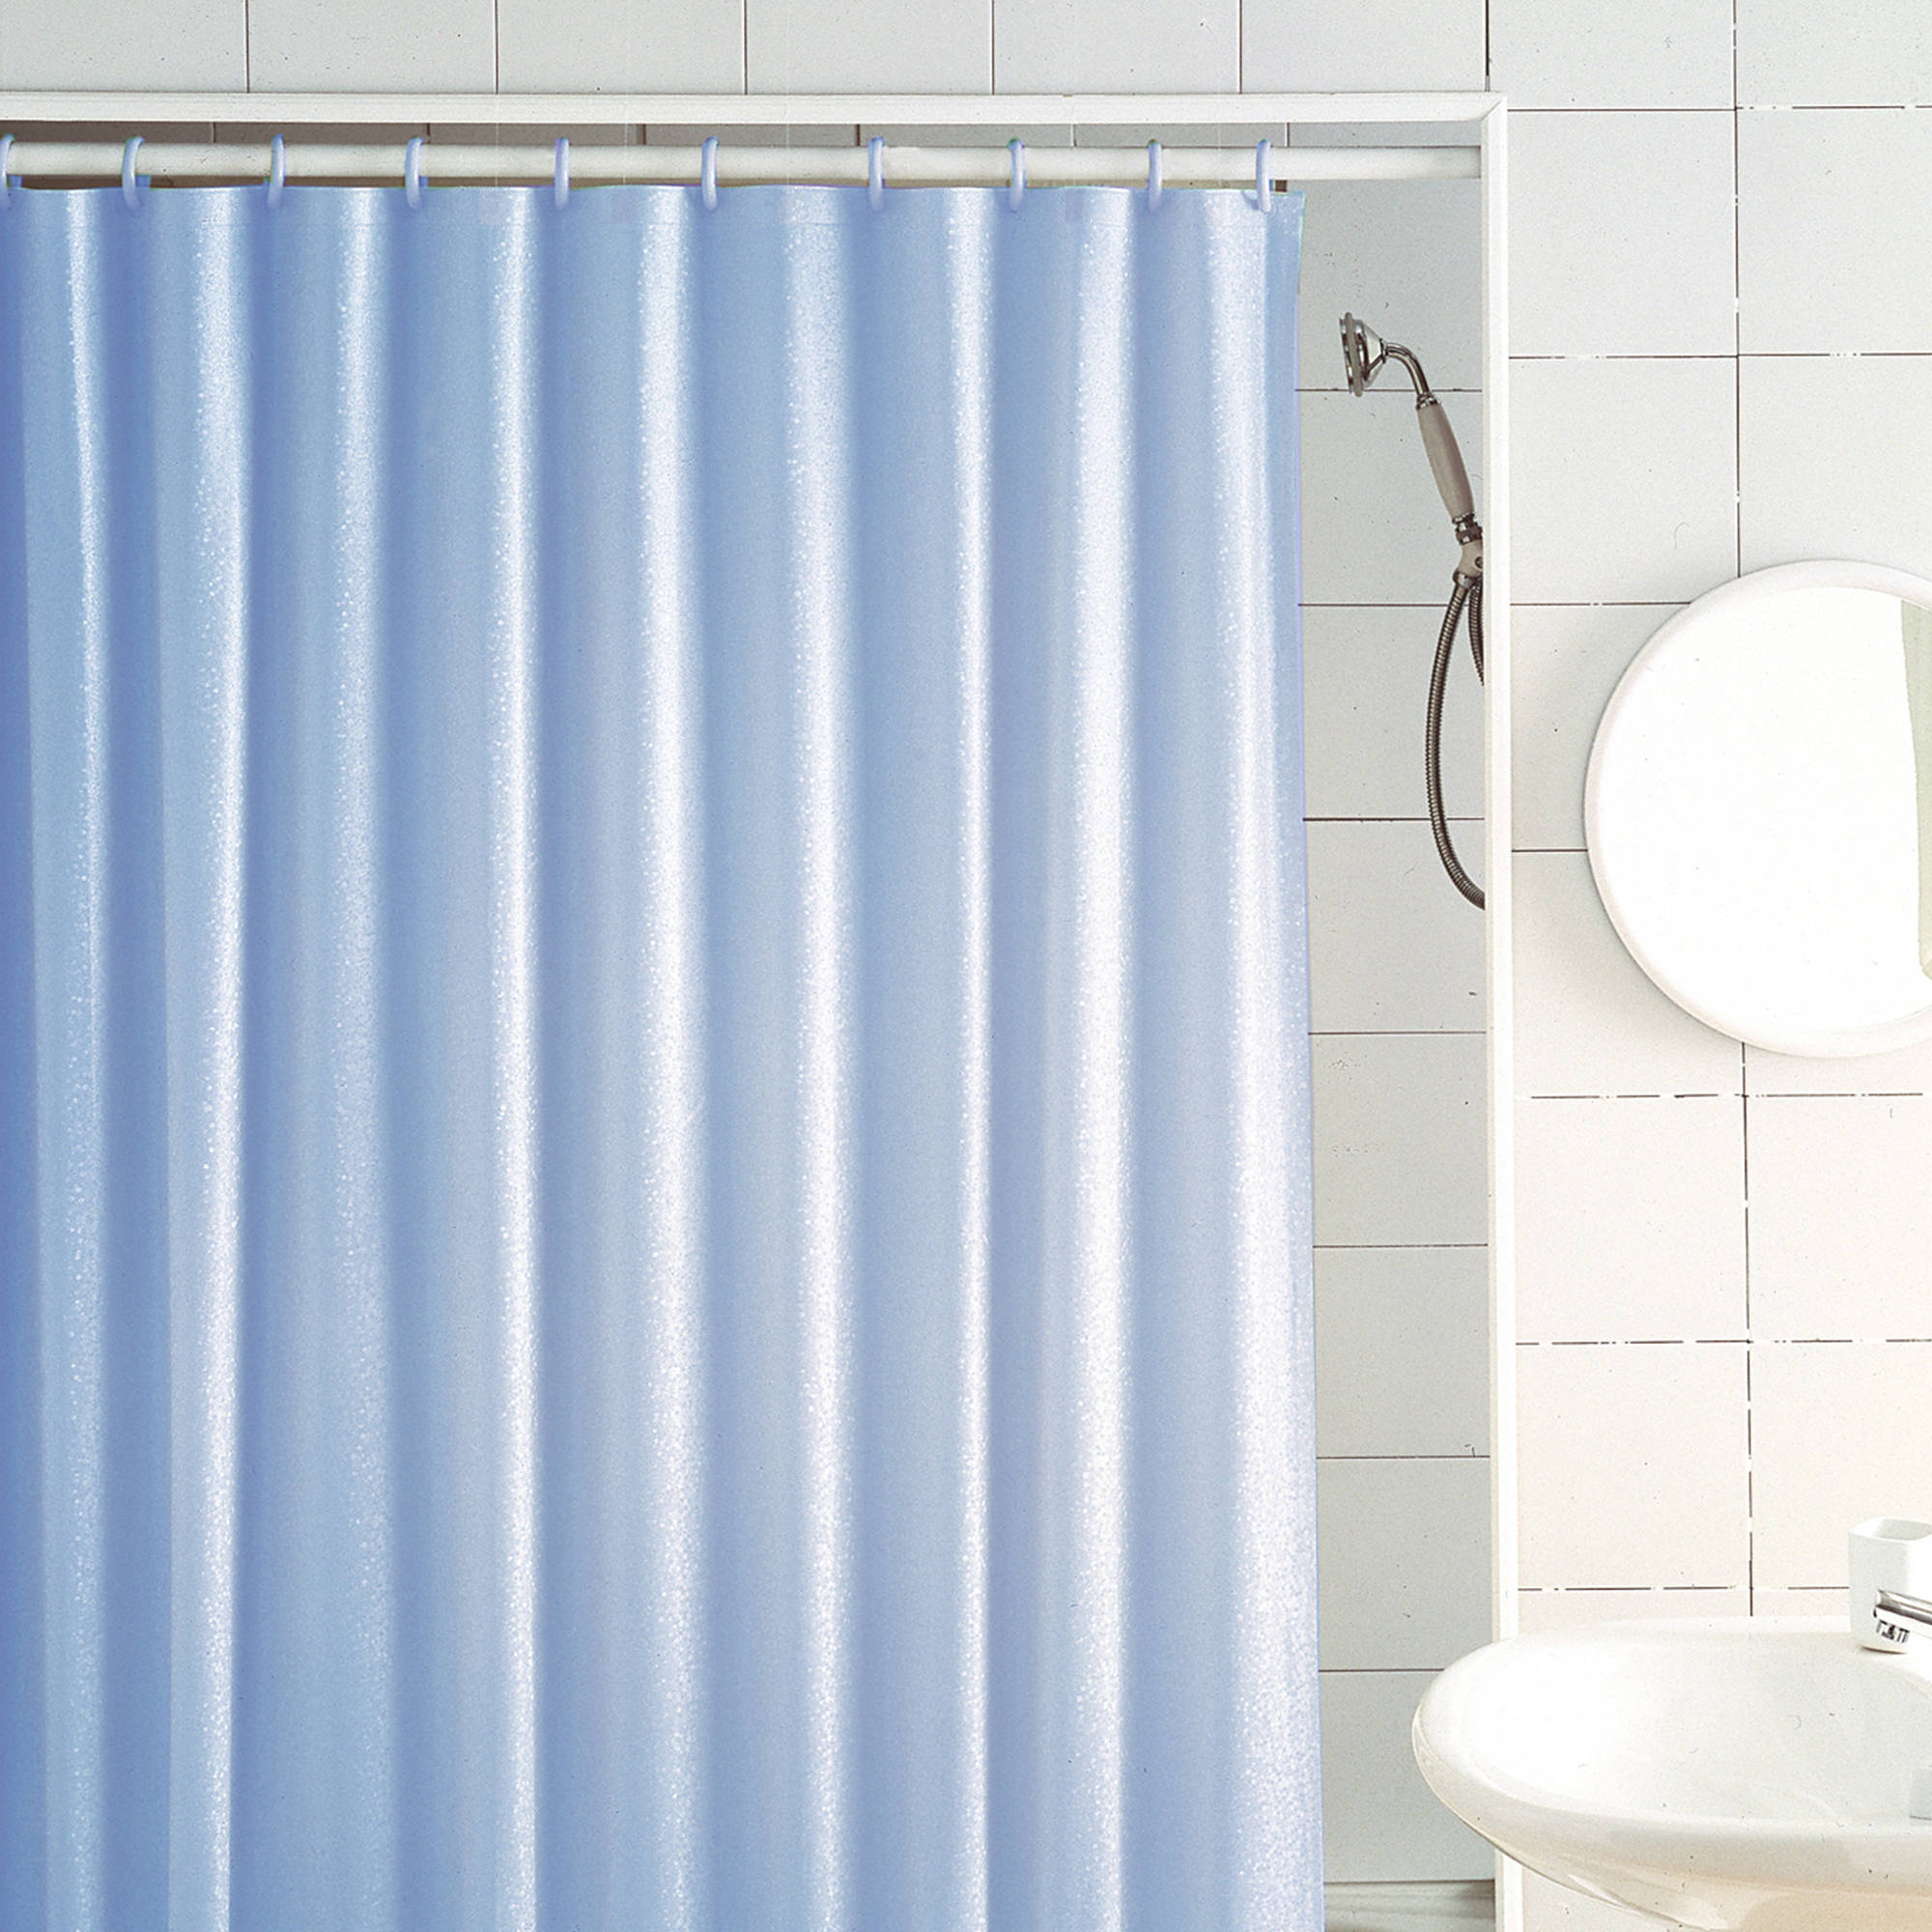 "Excell Glitter Medium-Weight Vinyl Shower Curtain, 70"" x 72"", Light Blue"